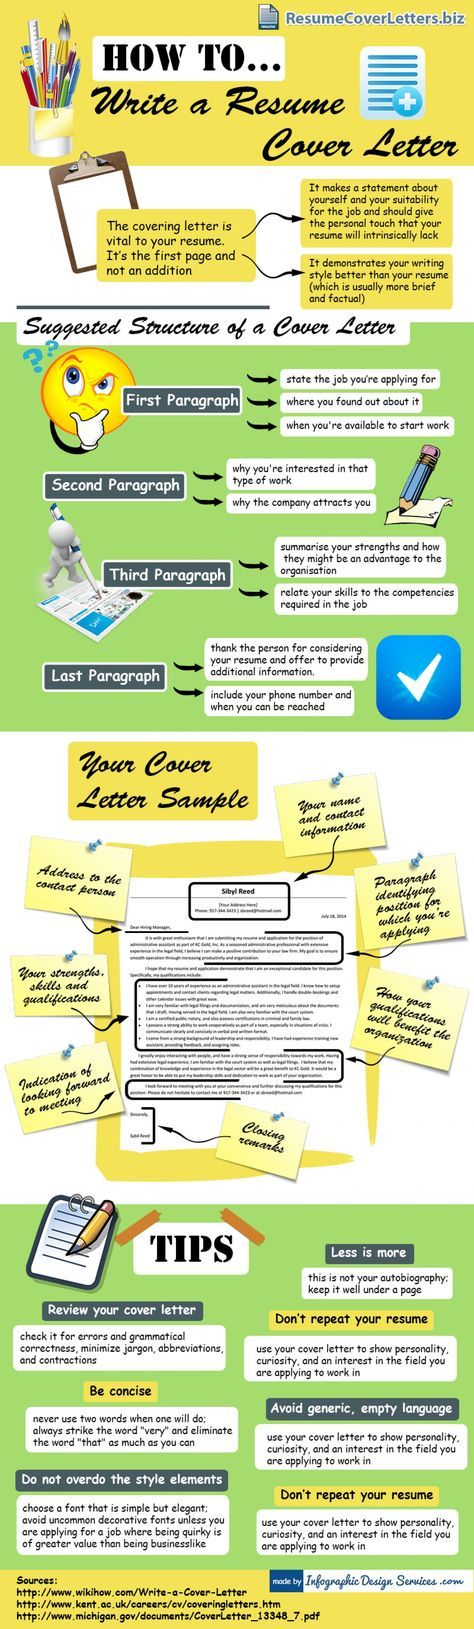 Best 20+ Resume writing tips ideas on Pinterest Cv writing tips - freelance resume writing